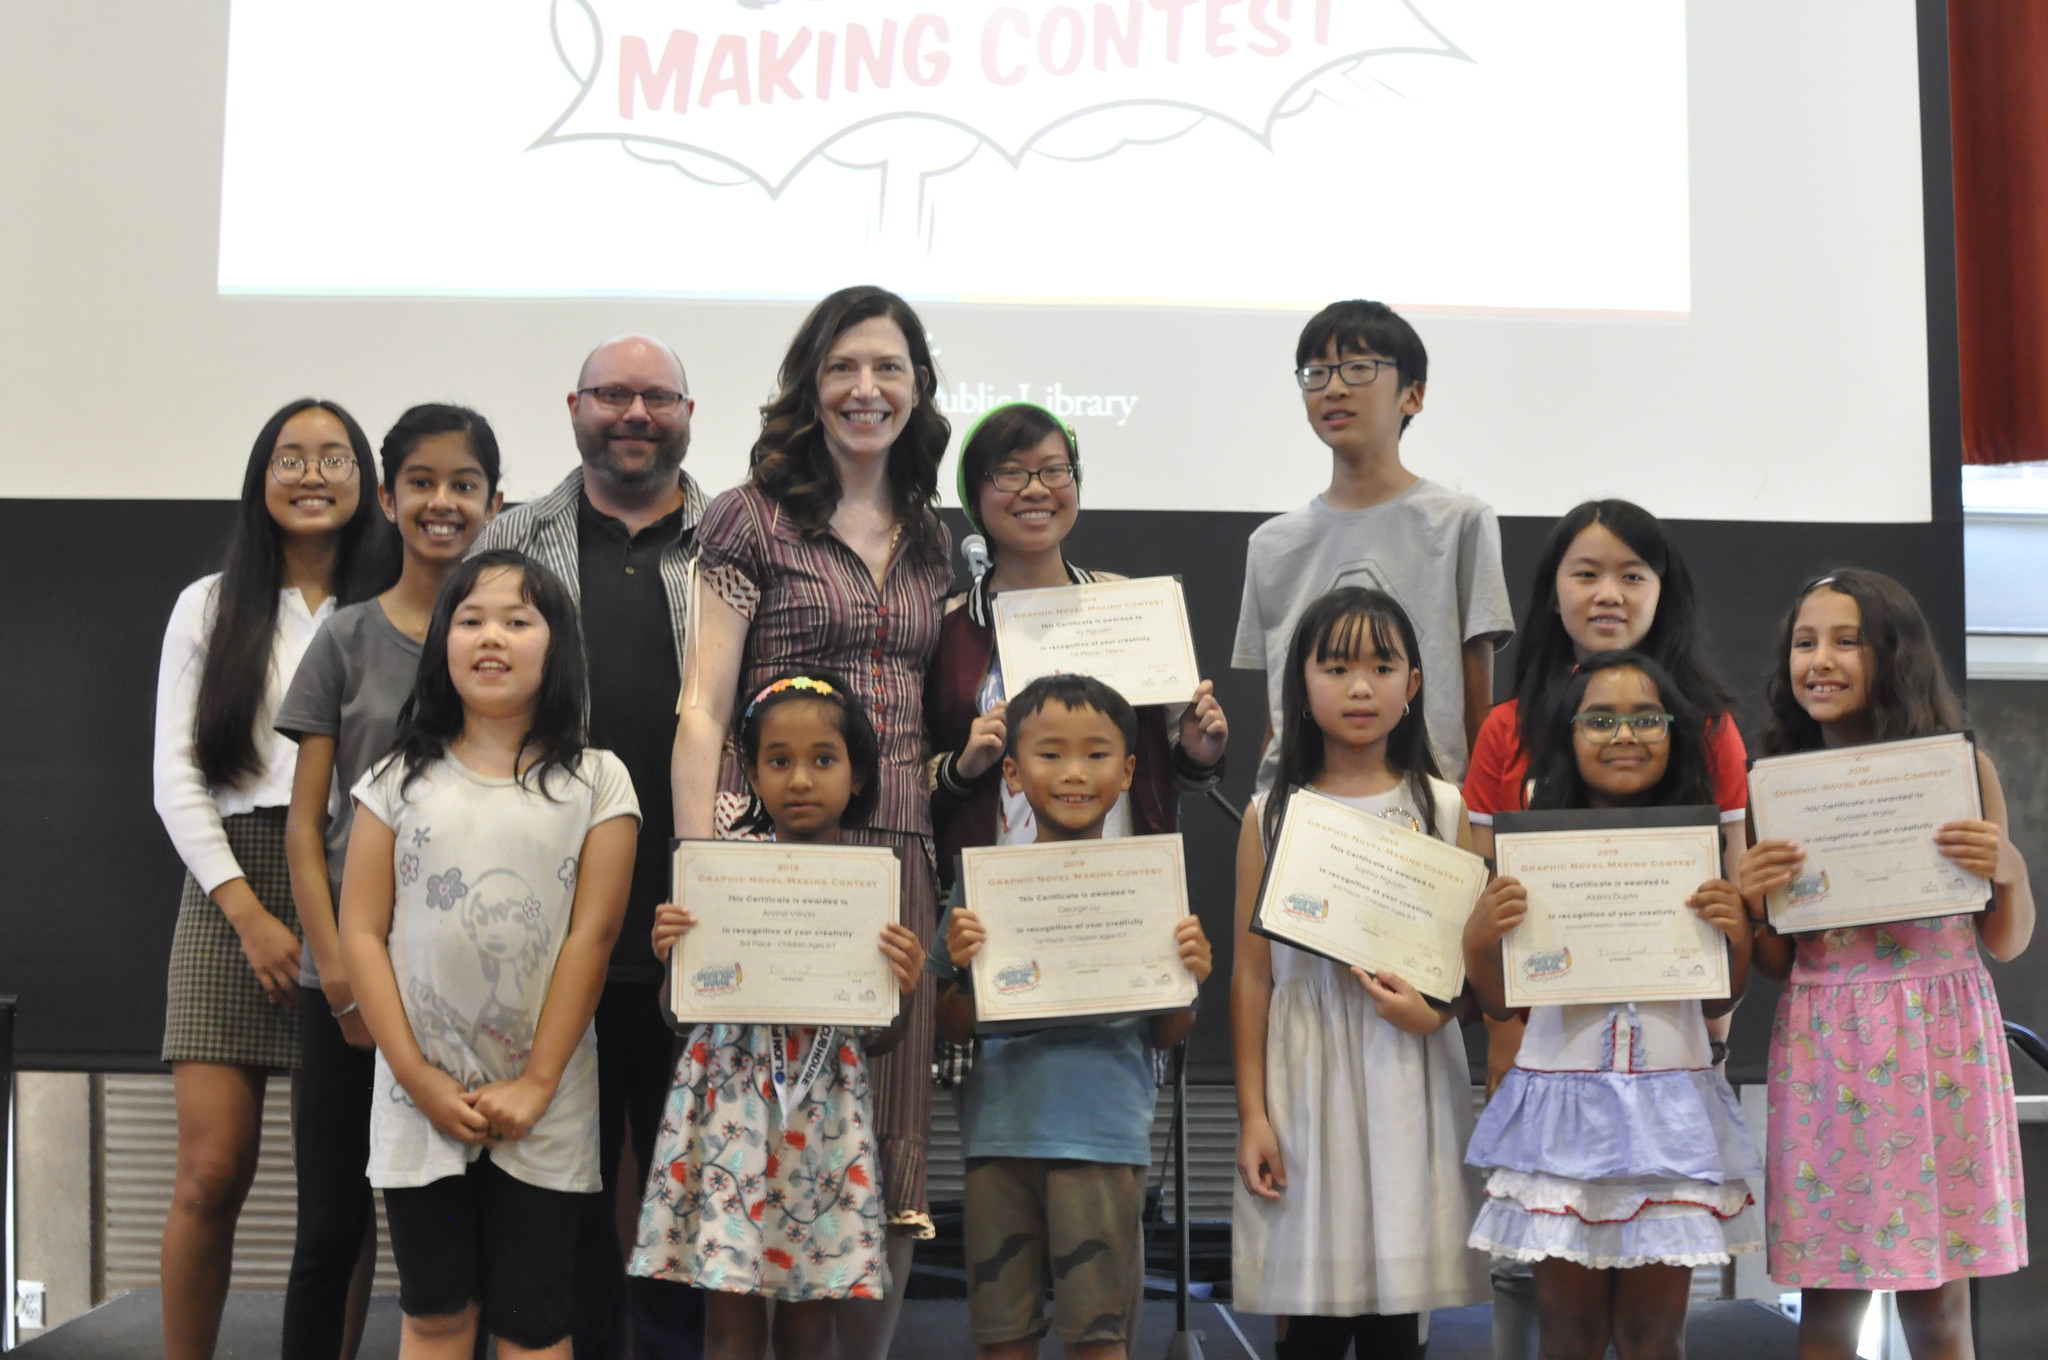 Winners of the library's 2019 Graphic Novel Making Contest standing on a stage with City Librarian Jill Bourne